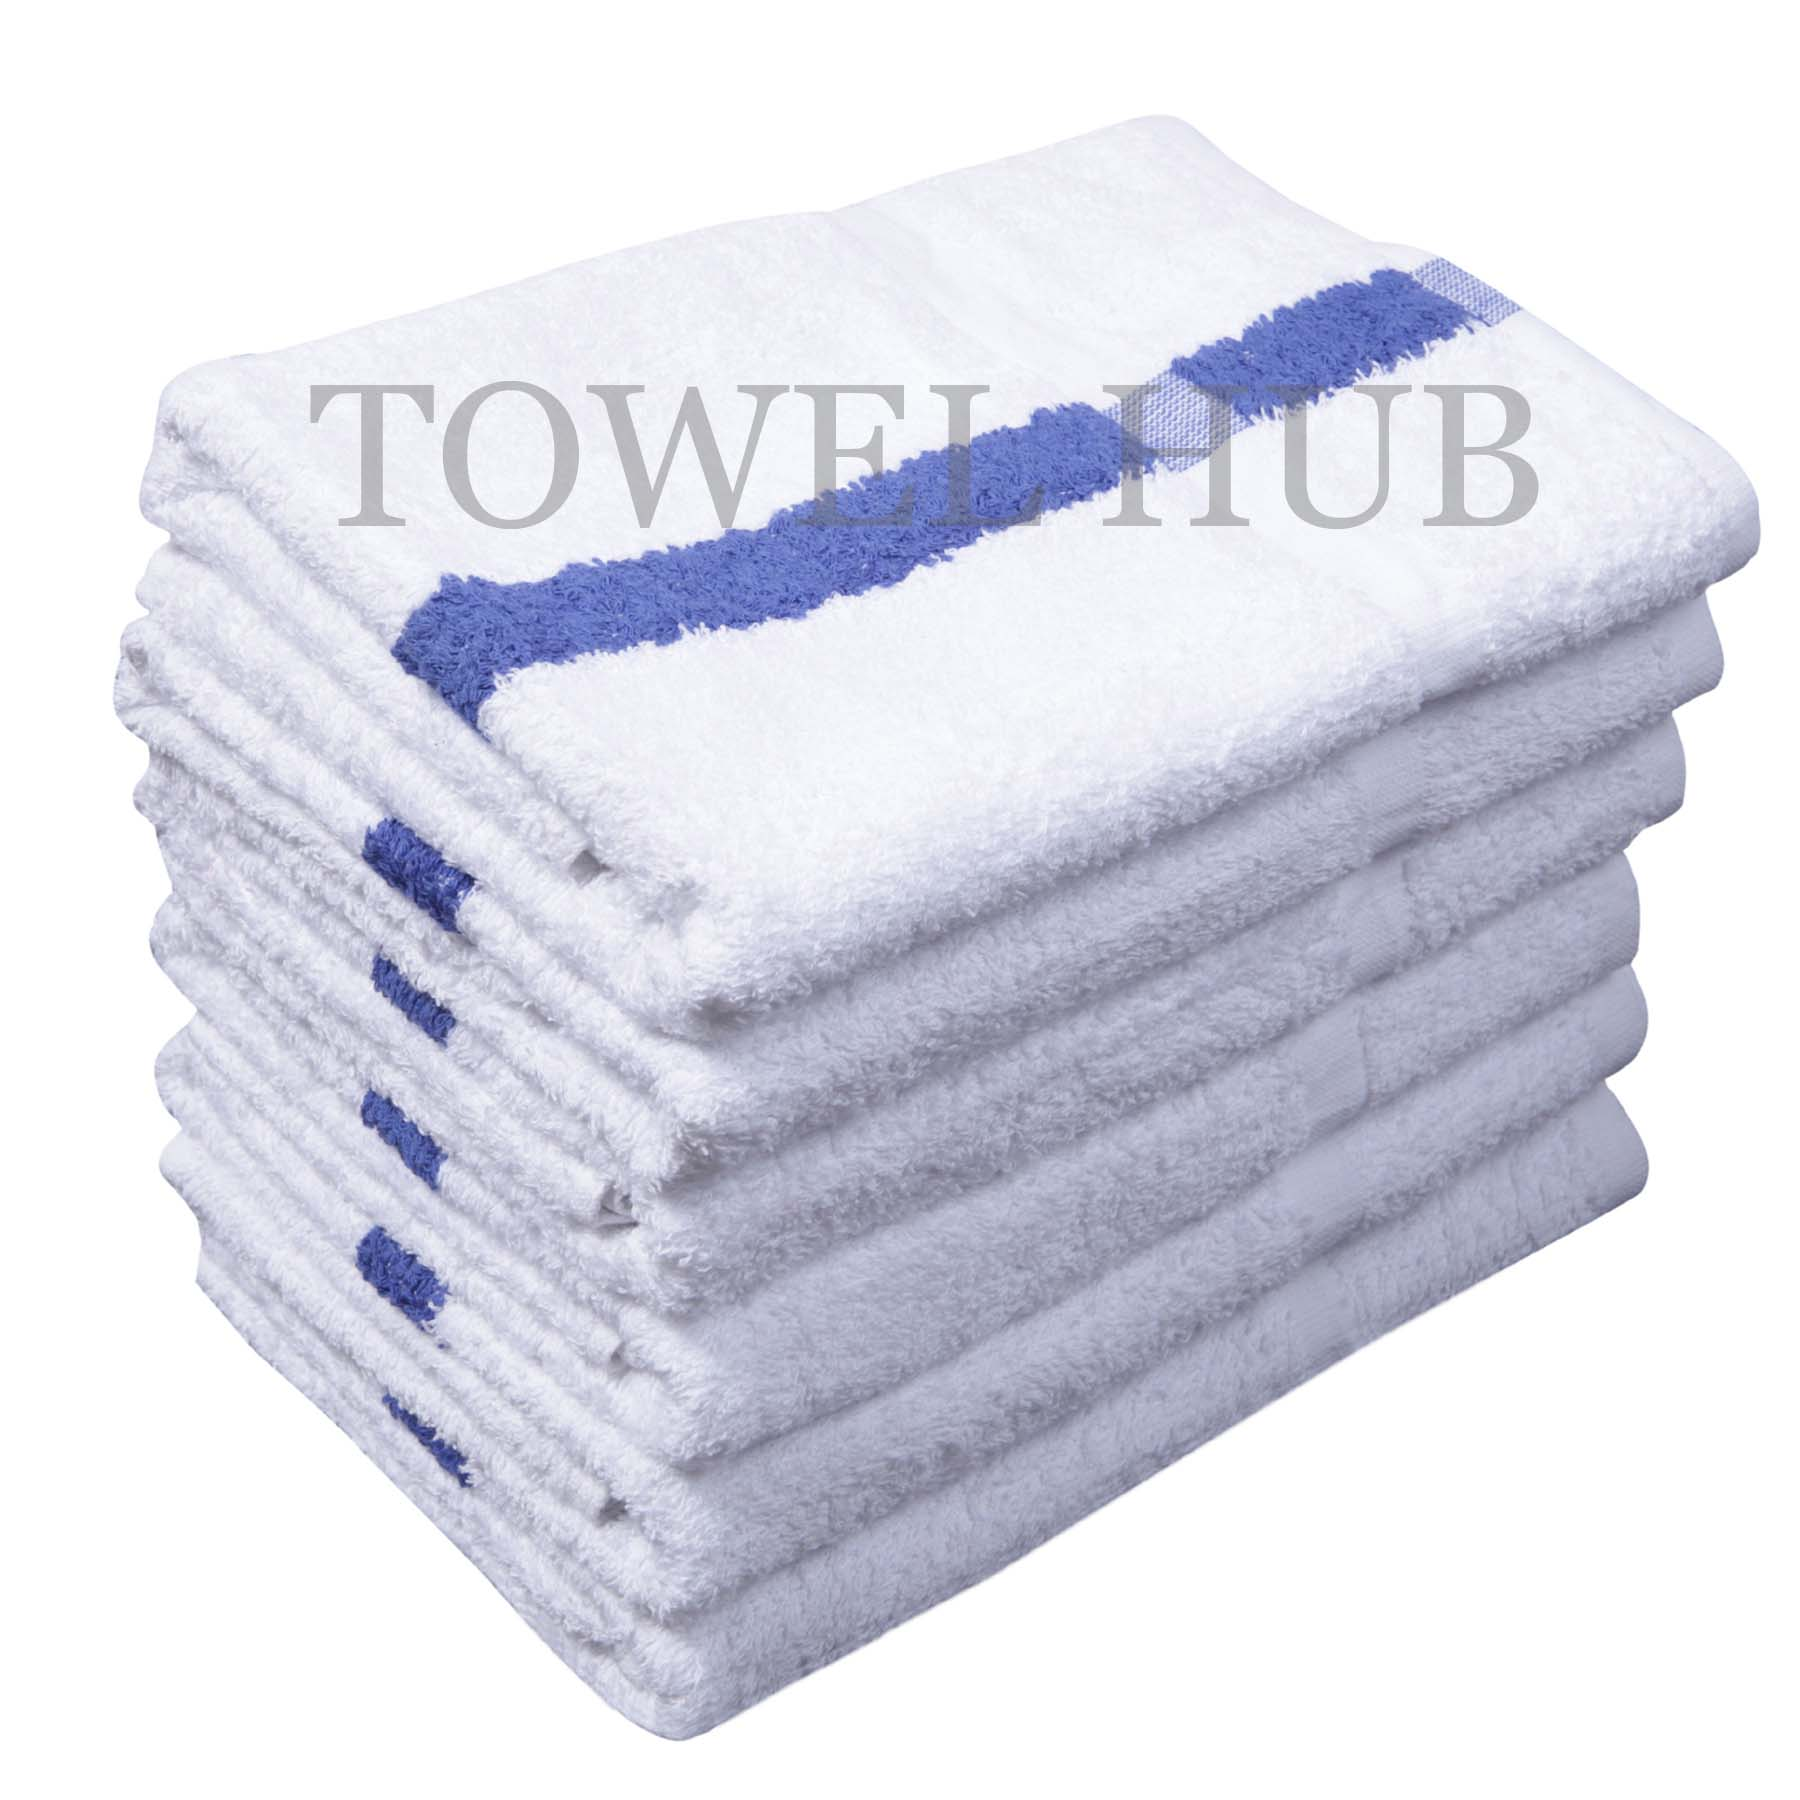 24x48 Blue Center Stripe Wholesale Gym Bath Towel 100 Cotton